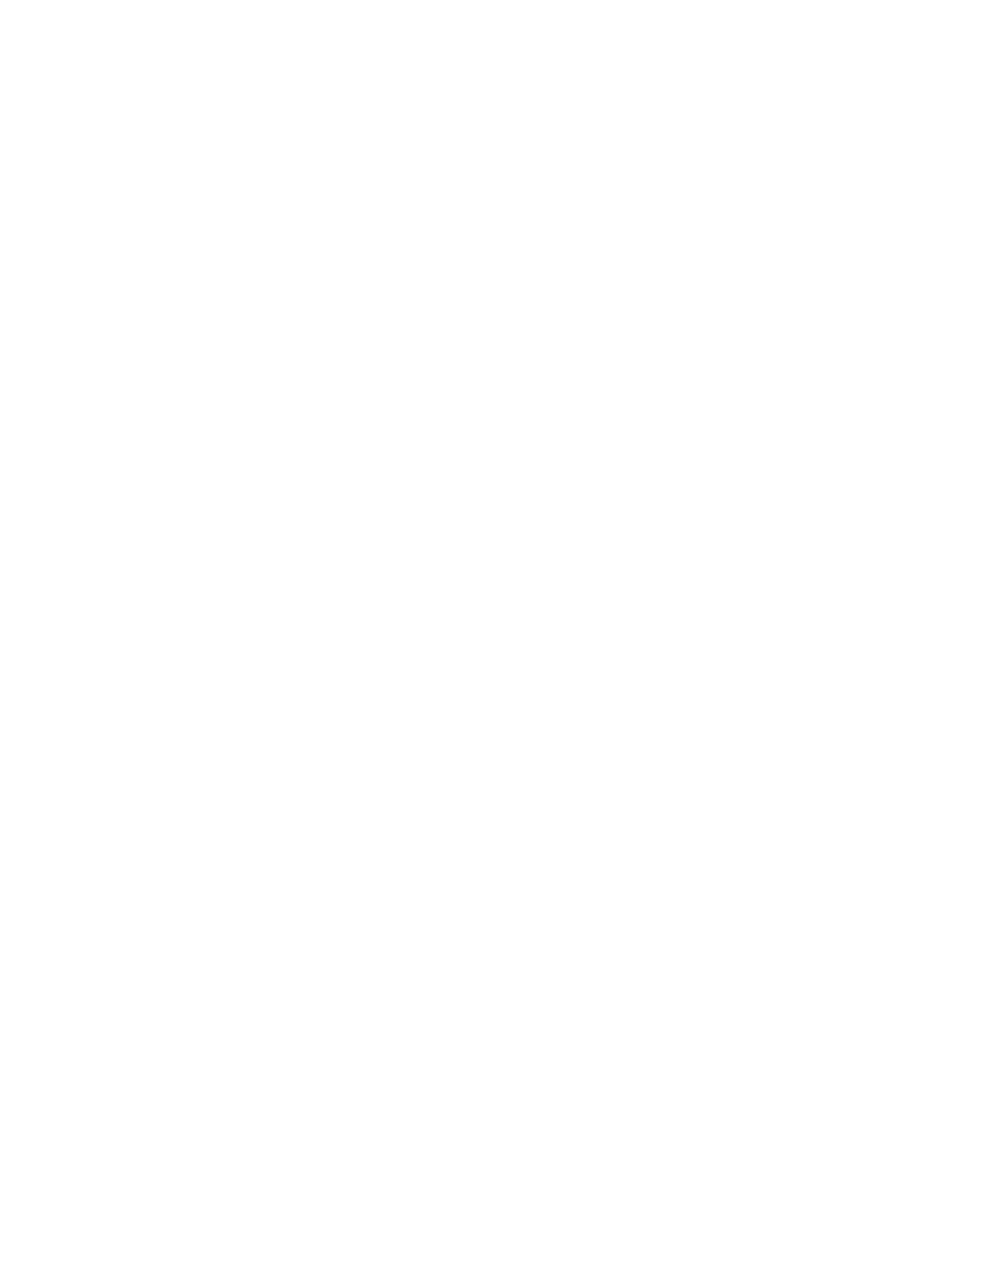 white valley cabinet logo